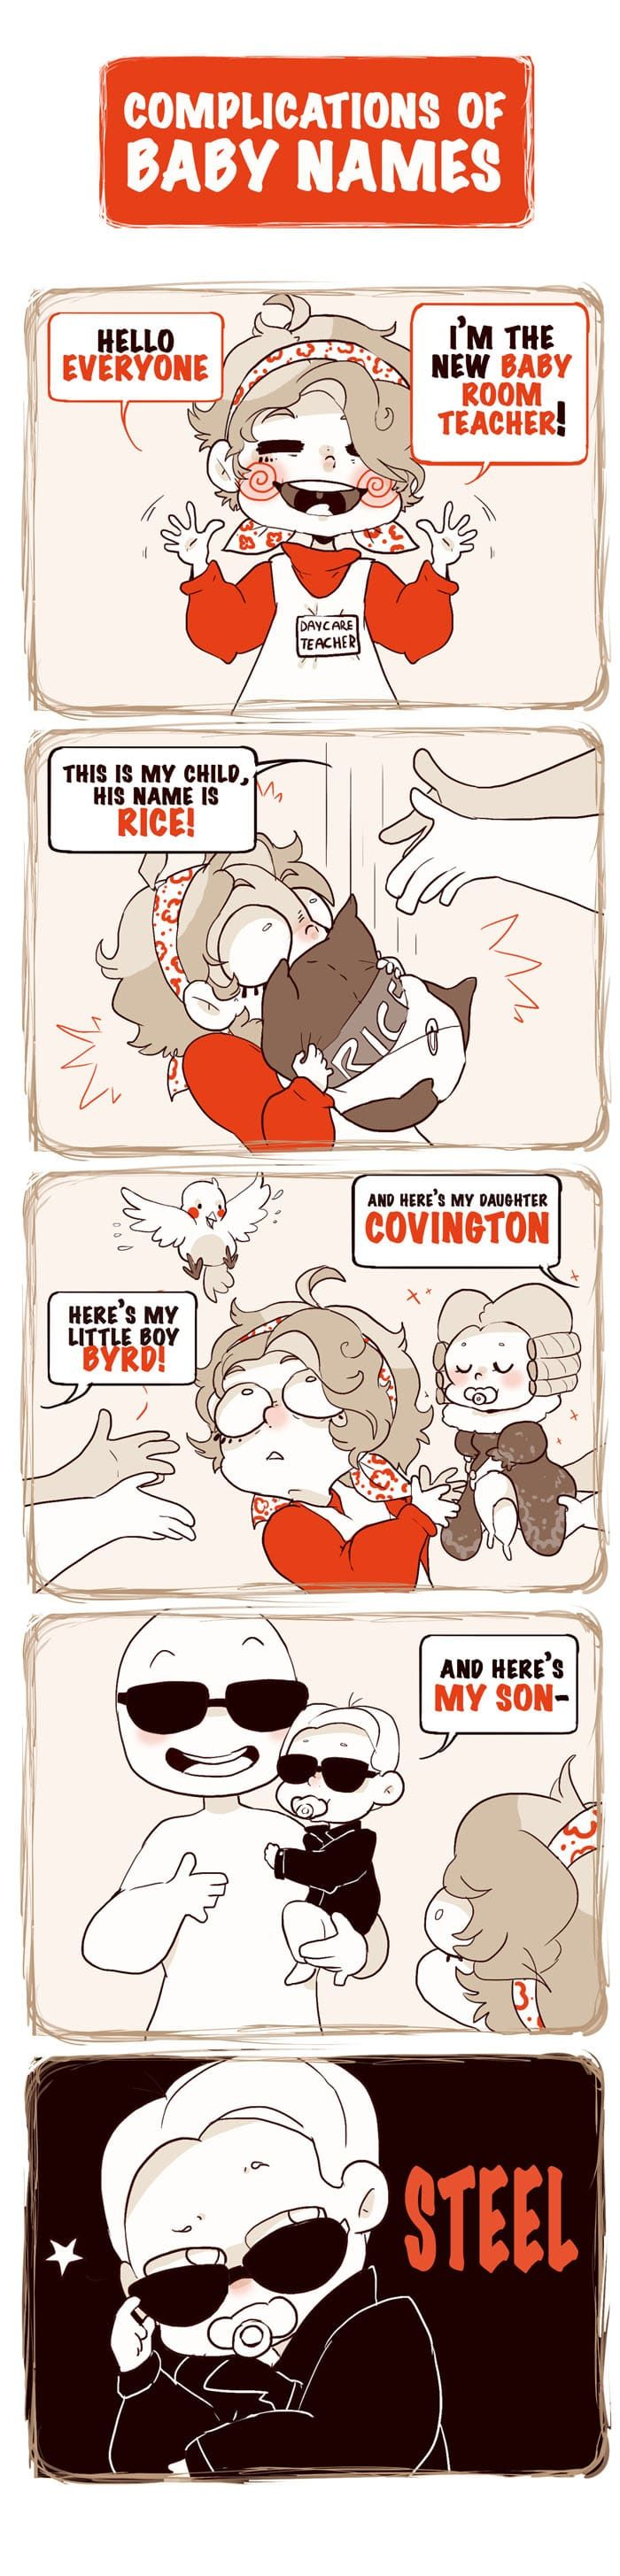 Complications of Eternal Youth :: Baby Names | Tapas - image 1